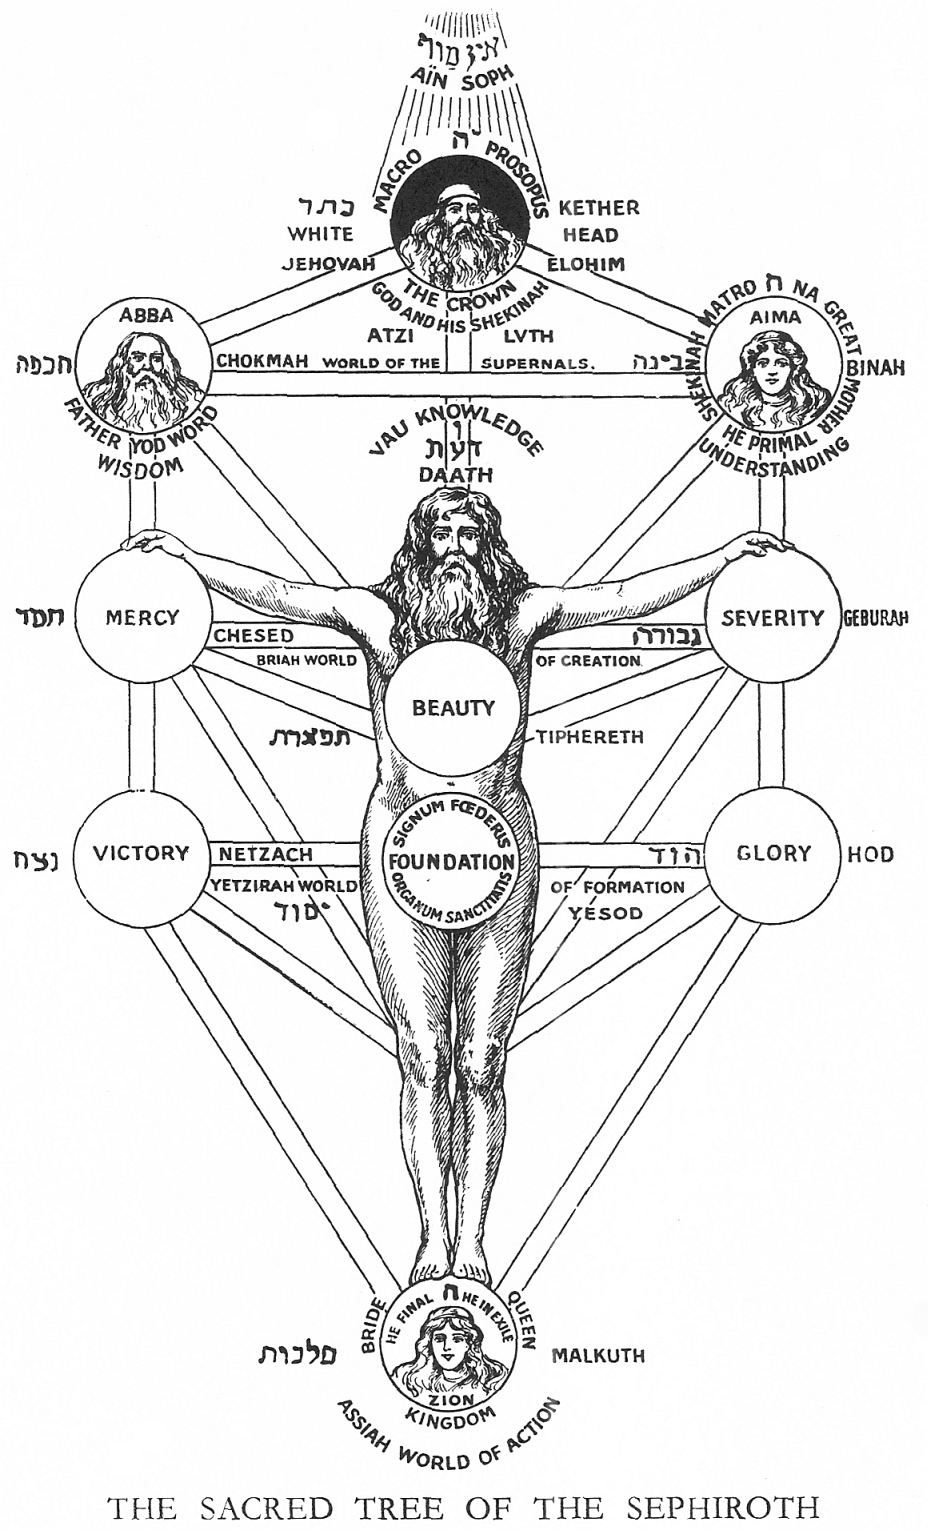 The Sacred Tree Of The Sephiroth Tree Of Life Occult Sacred Tree It is the structure of the 10 sefirot (or sephirot), arranged in 3 pillars. the sacred tree of the sephiroth